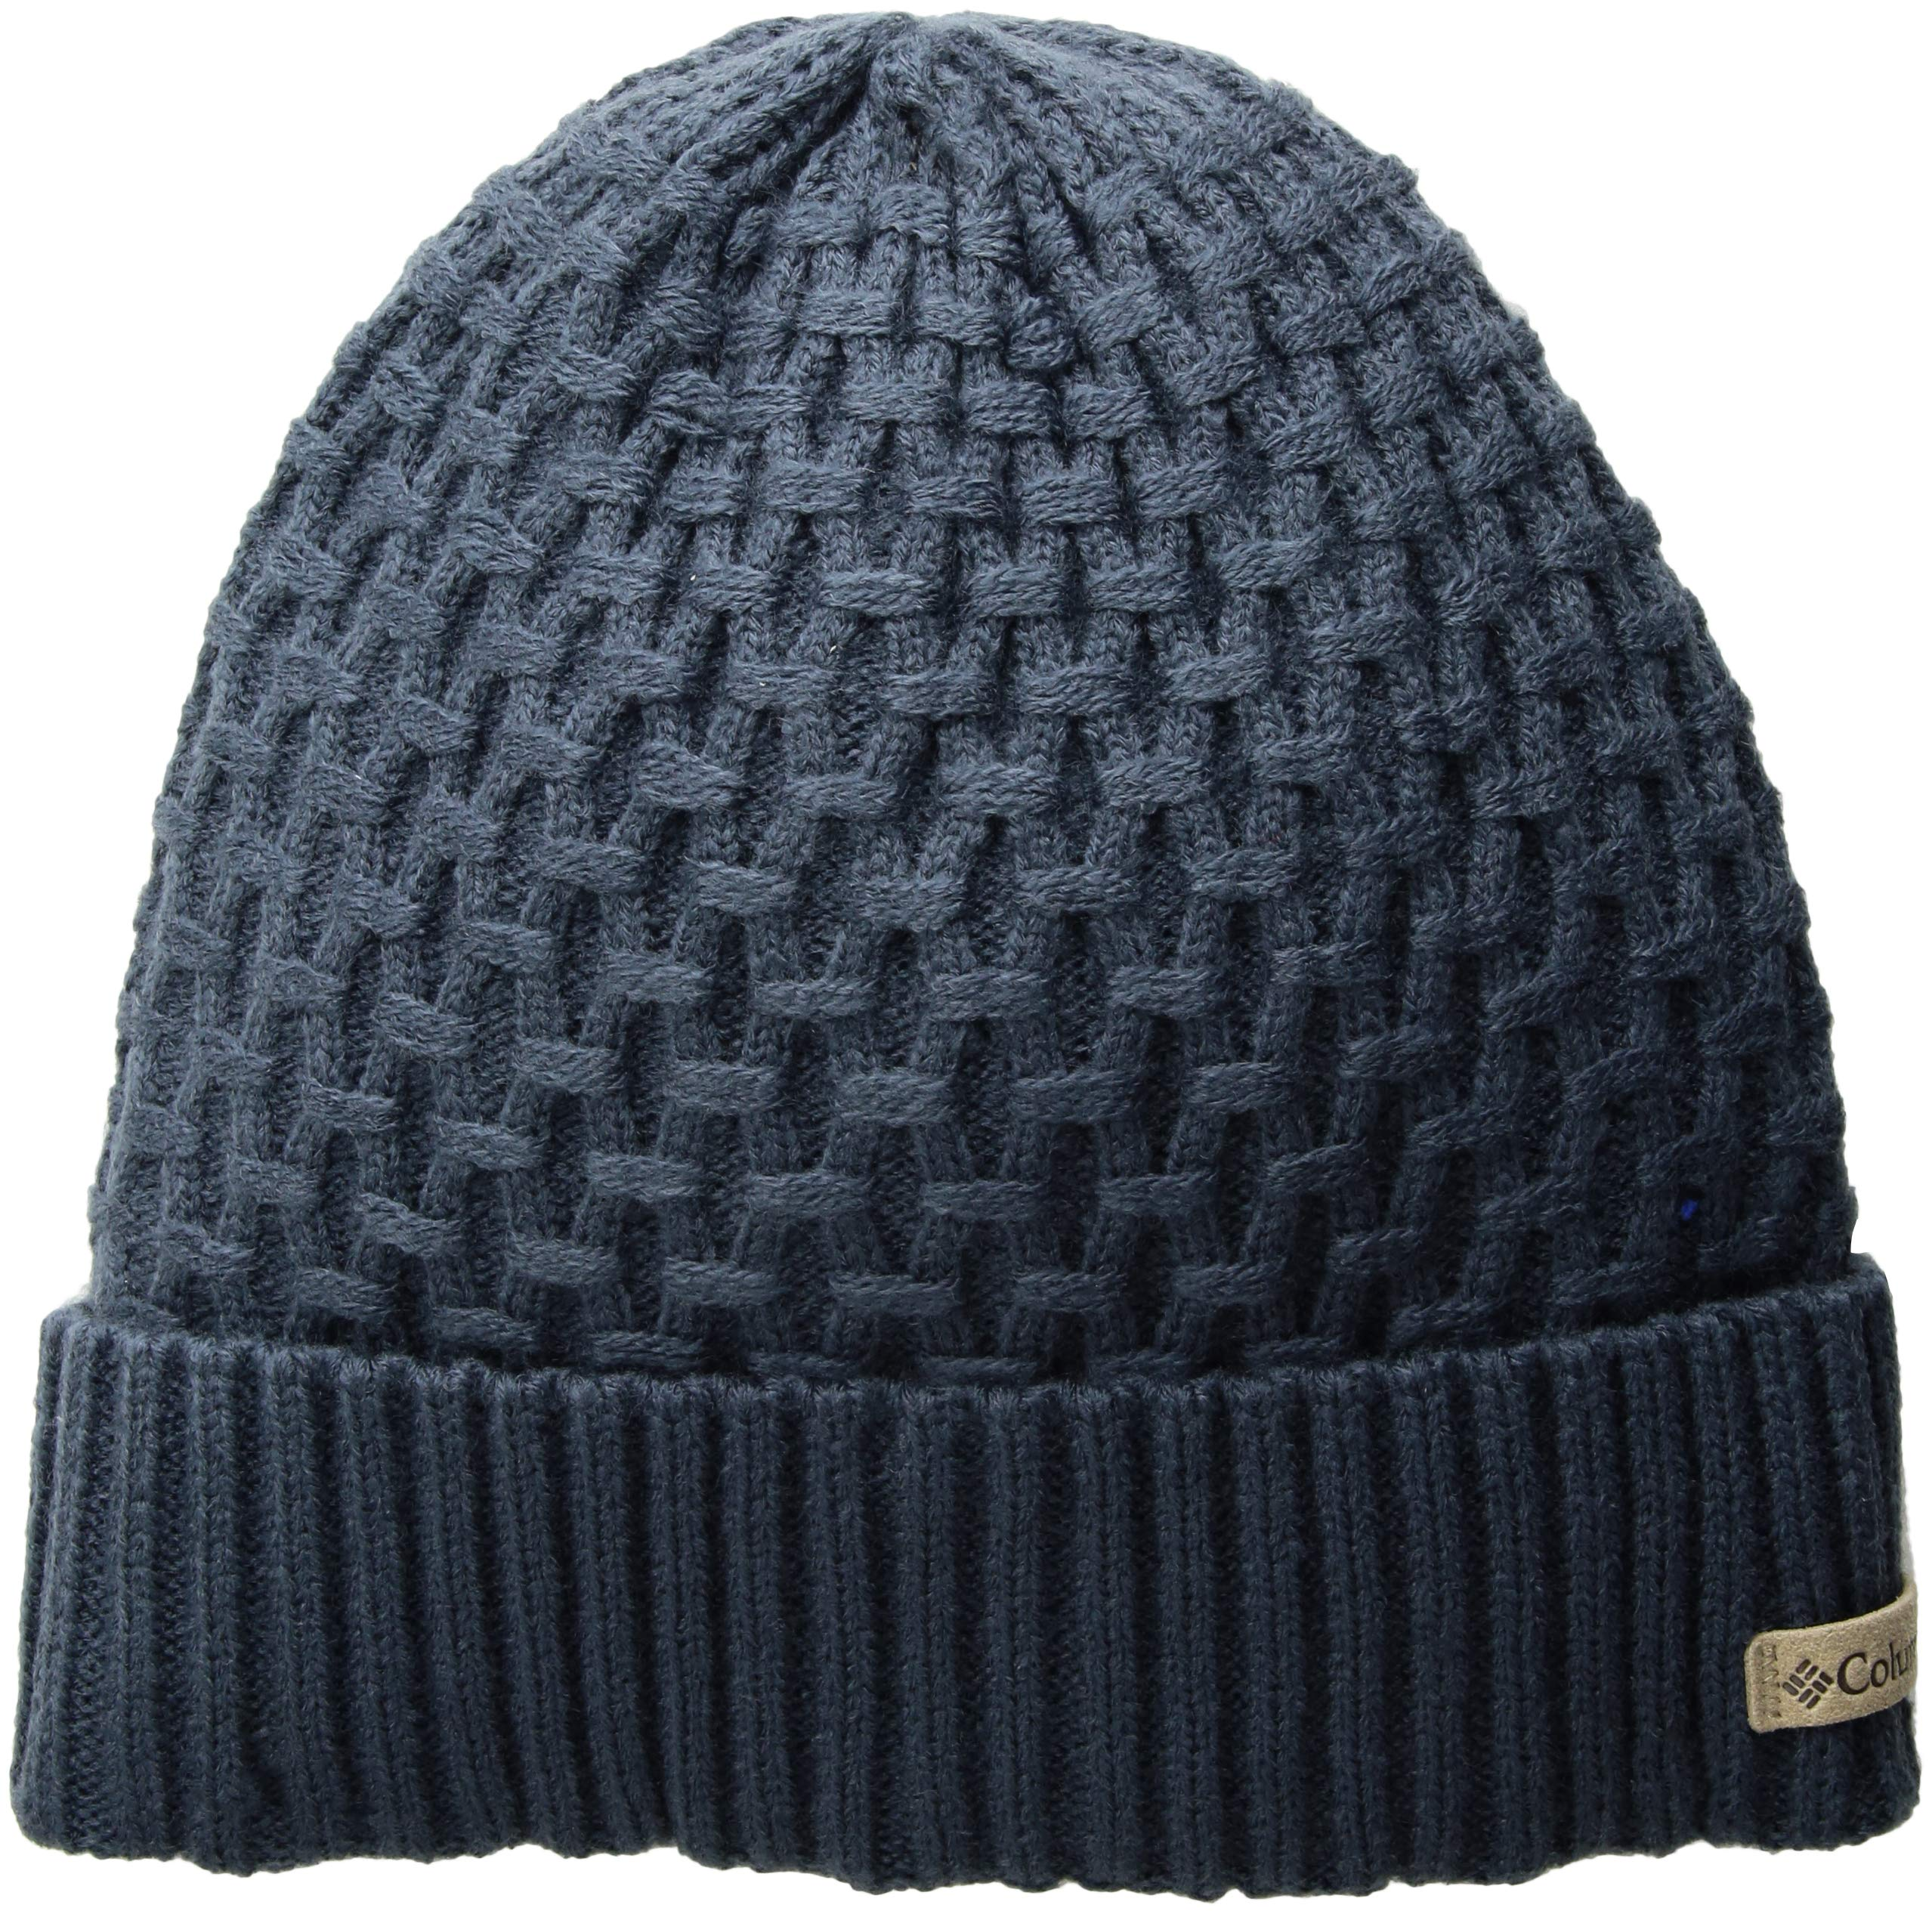 Columbia Hideaway Haven Cabled Beanie, Nocturnal, One Size